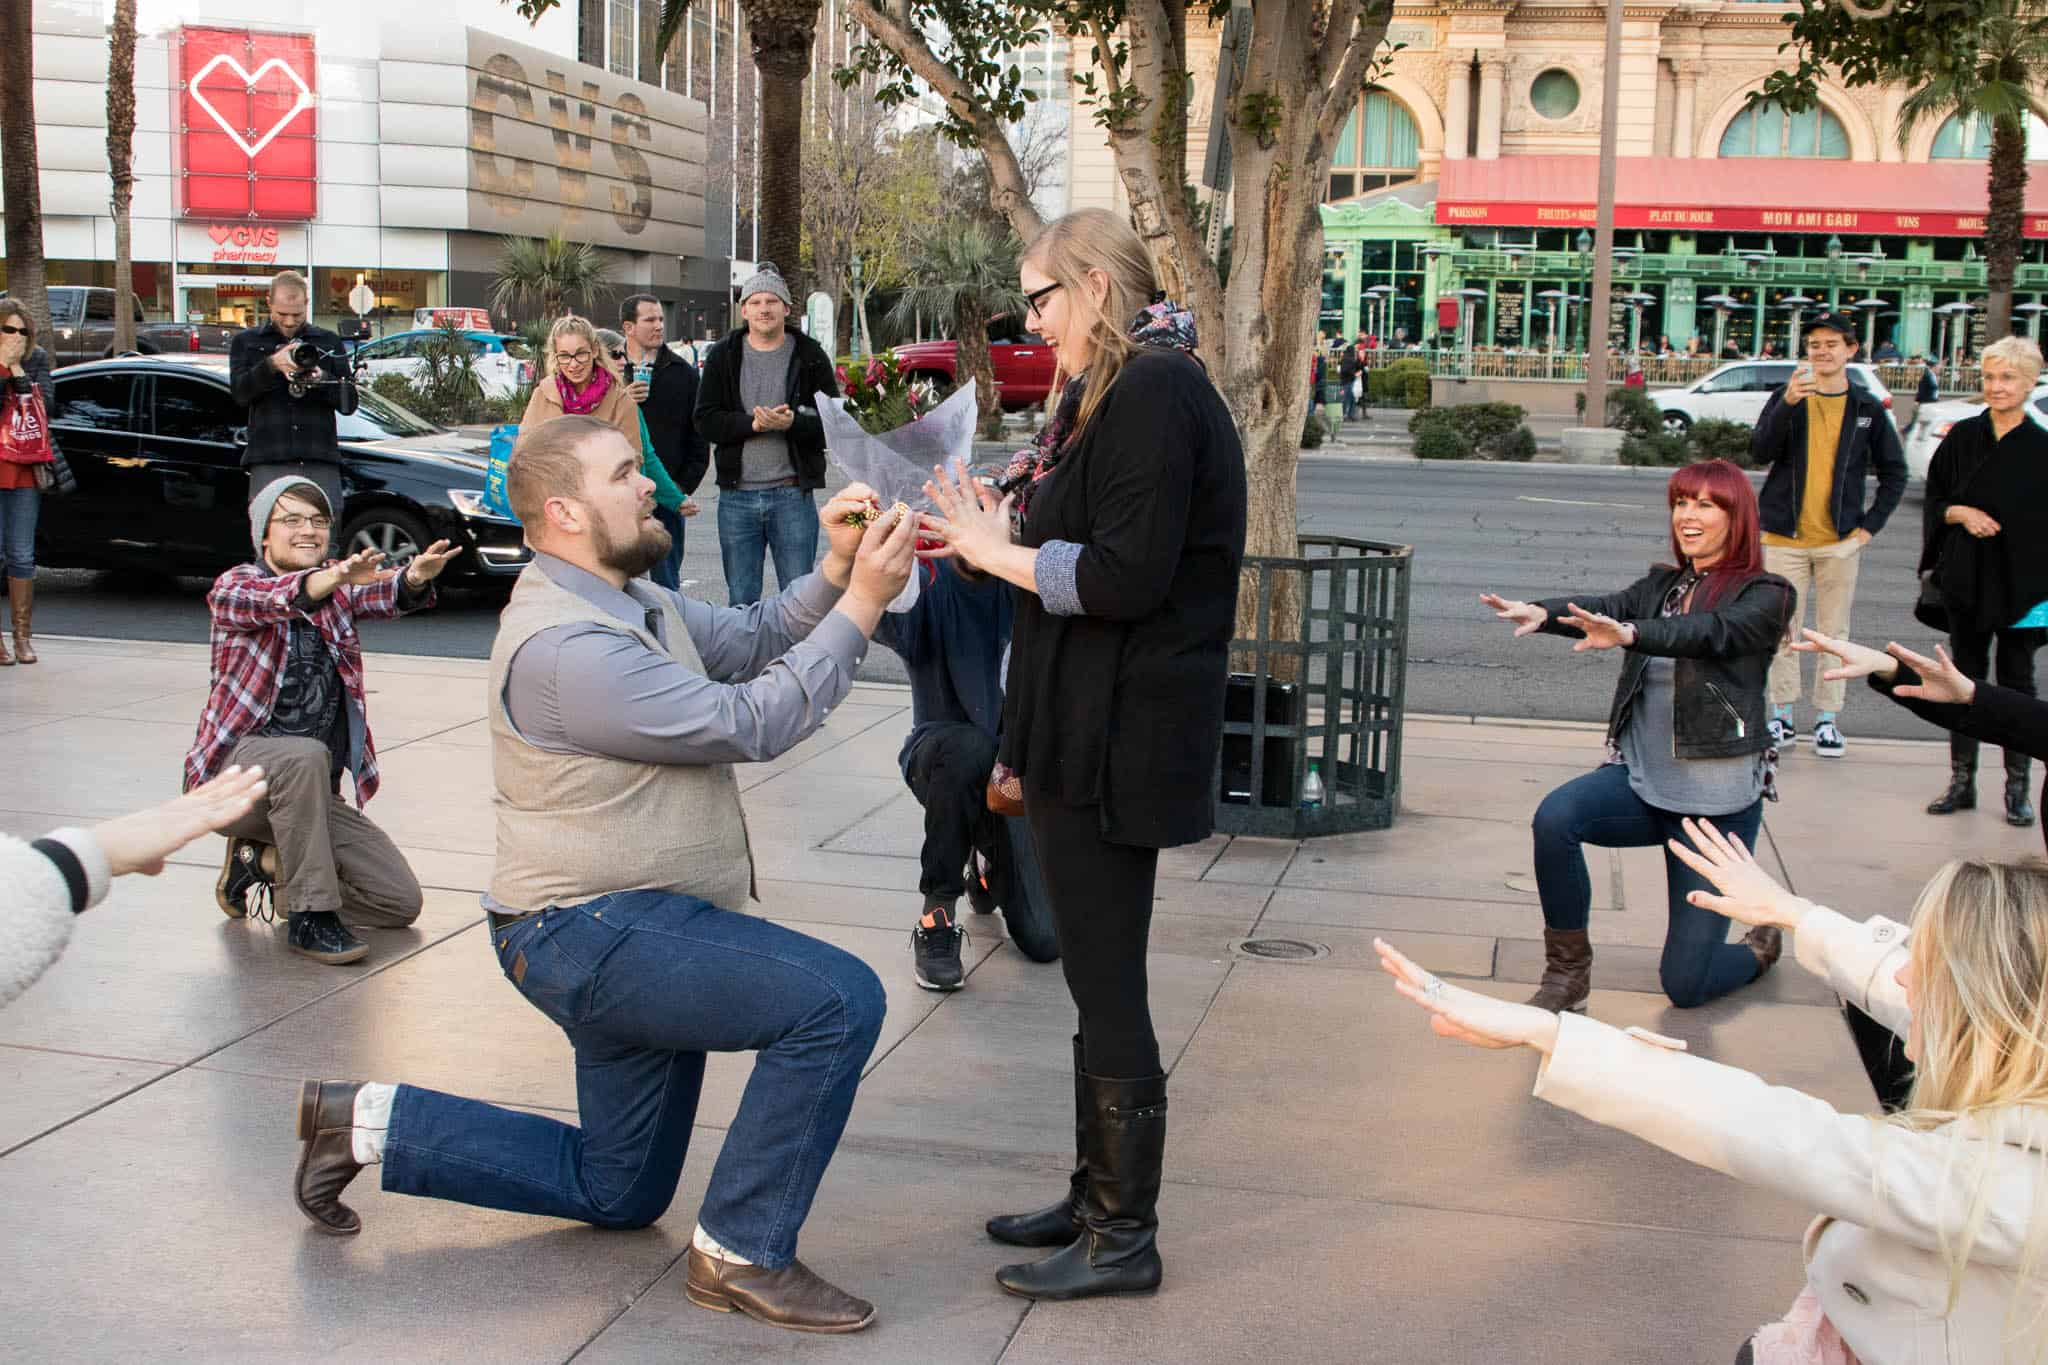 flash-mob-las-vegas-proposal-idea-4.jpg